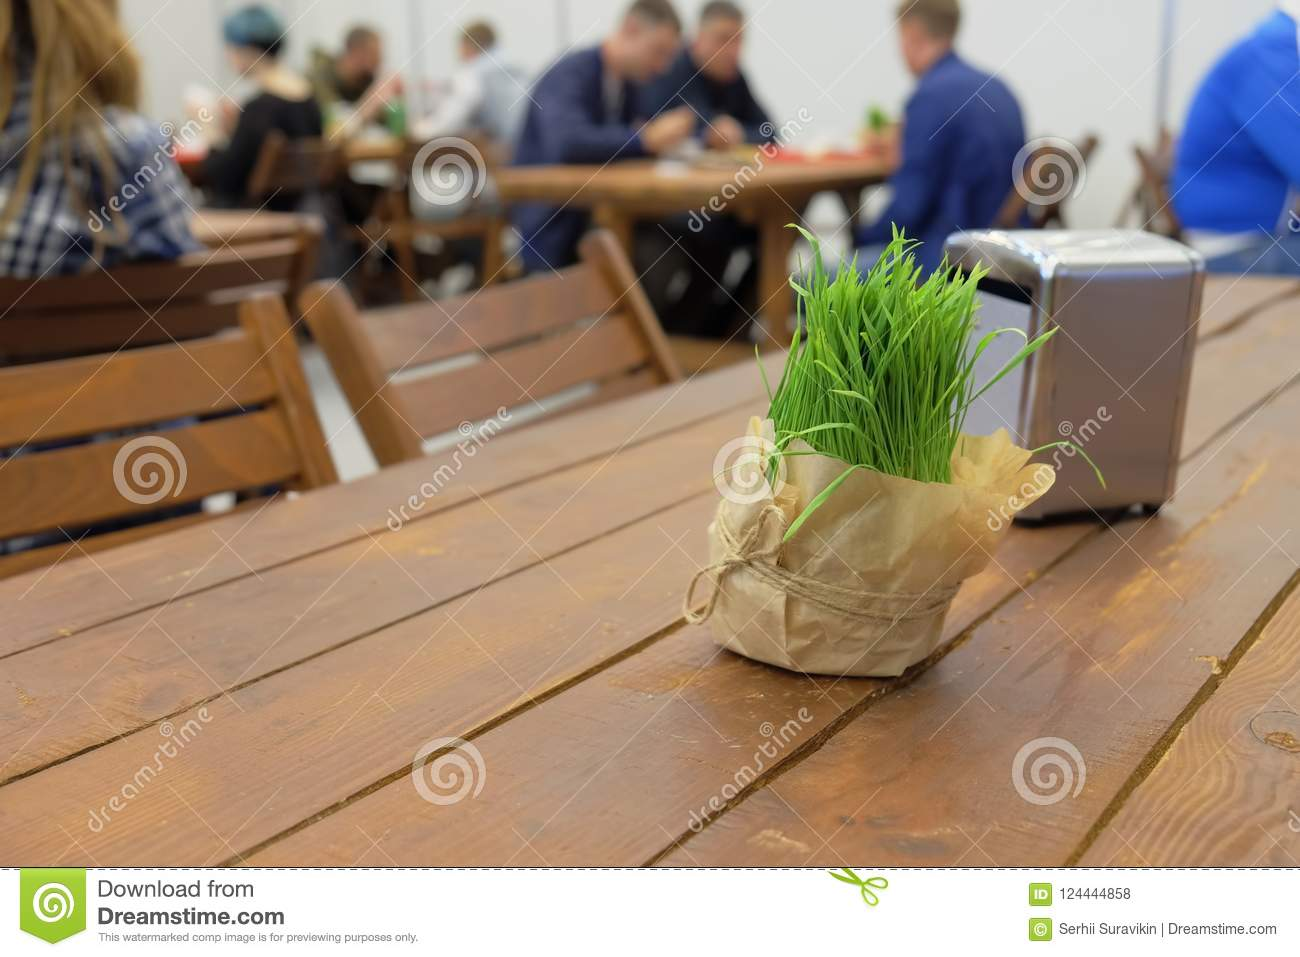 Decorative Bouquet Of Green Fresh Grass On A Vacant Table In Rustic Style Cafe Copy Space For Text